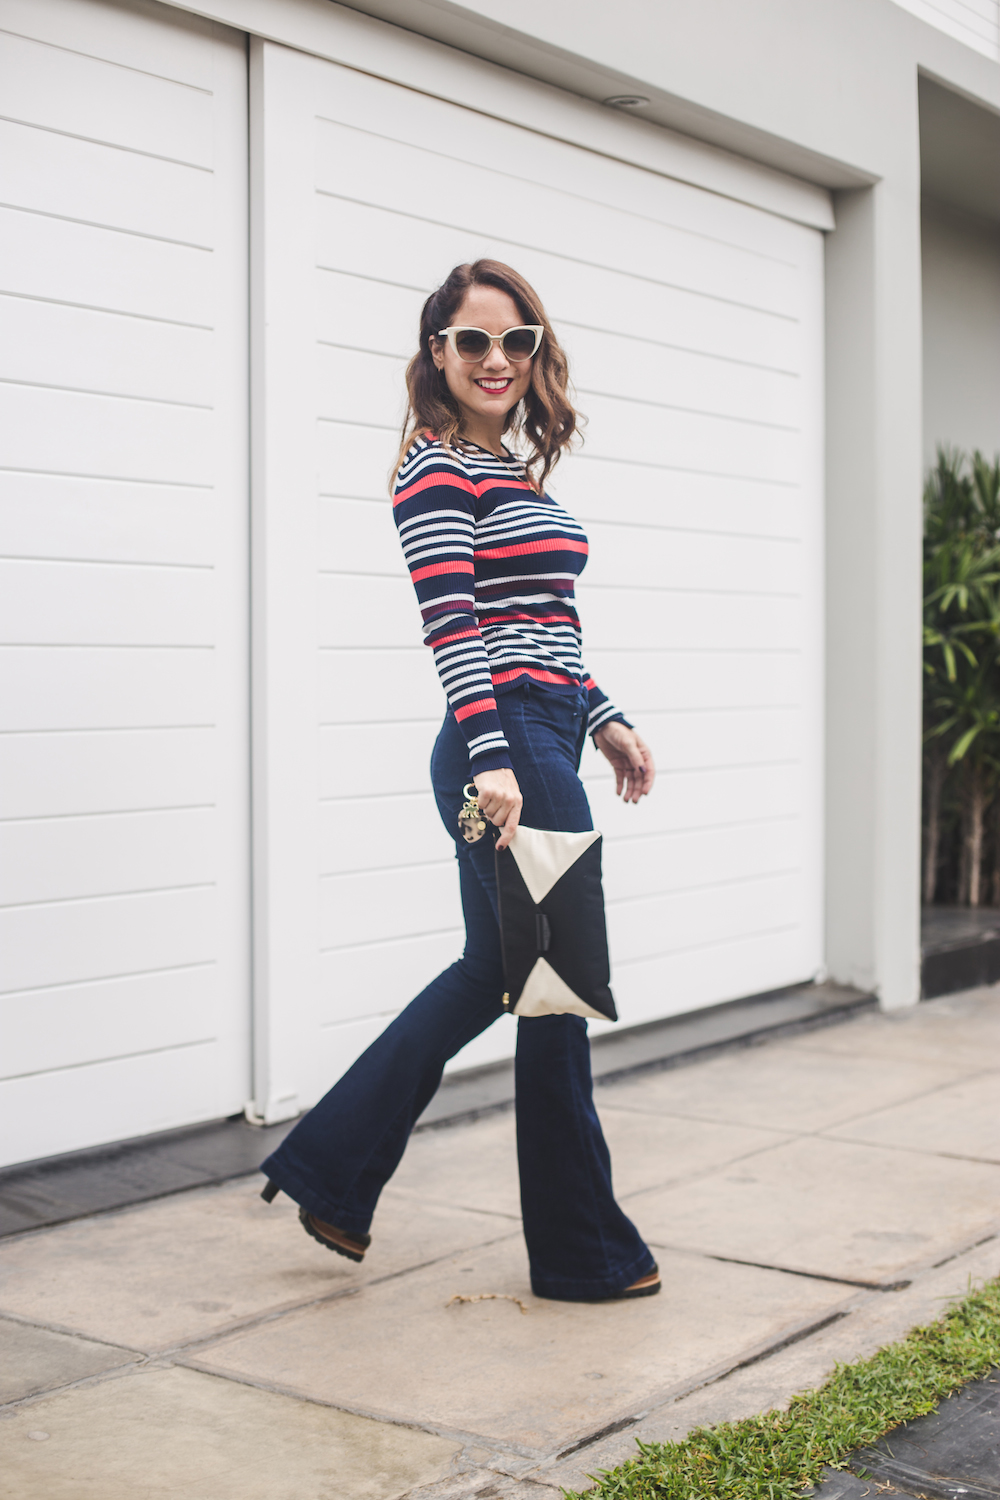 Zara 90's shirt striped - Gap wide leg jeans - Zapatos Lola - Kipling clutch - La Vida de Serendipity 4